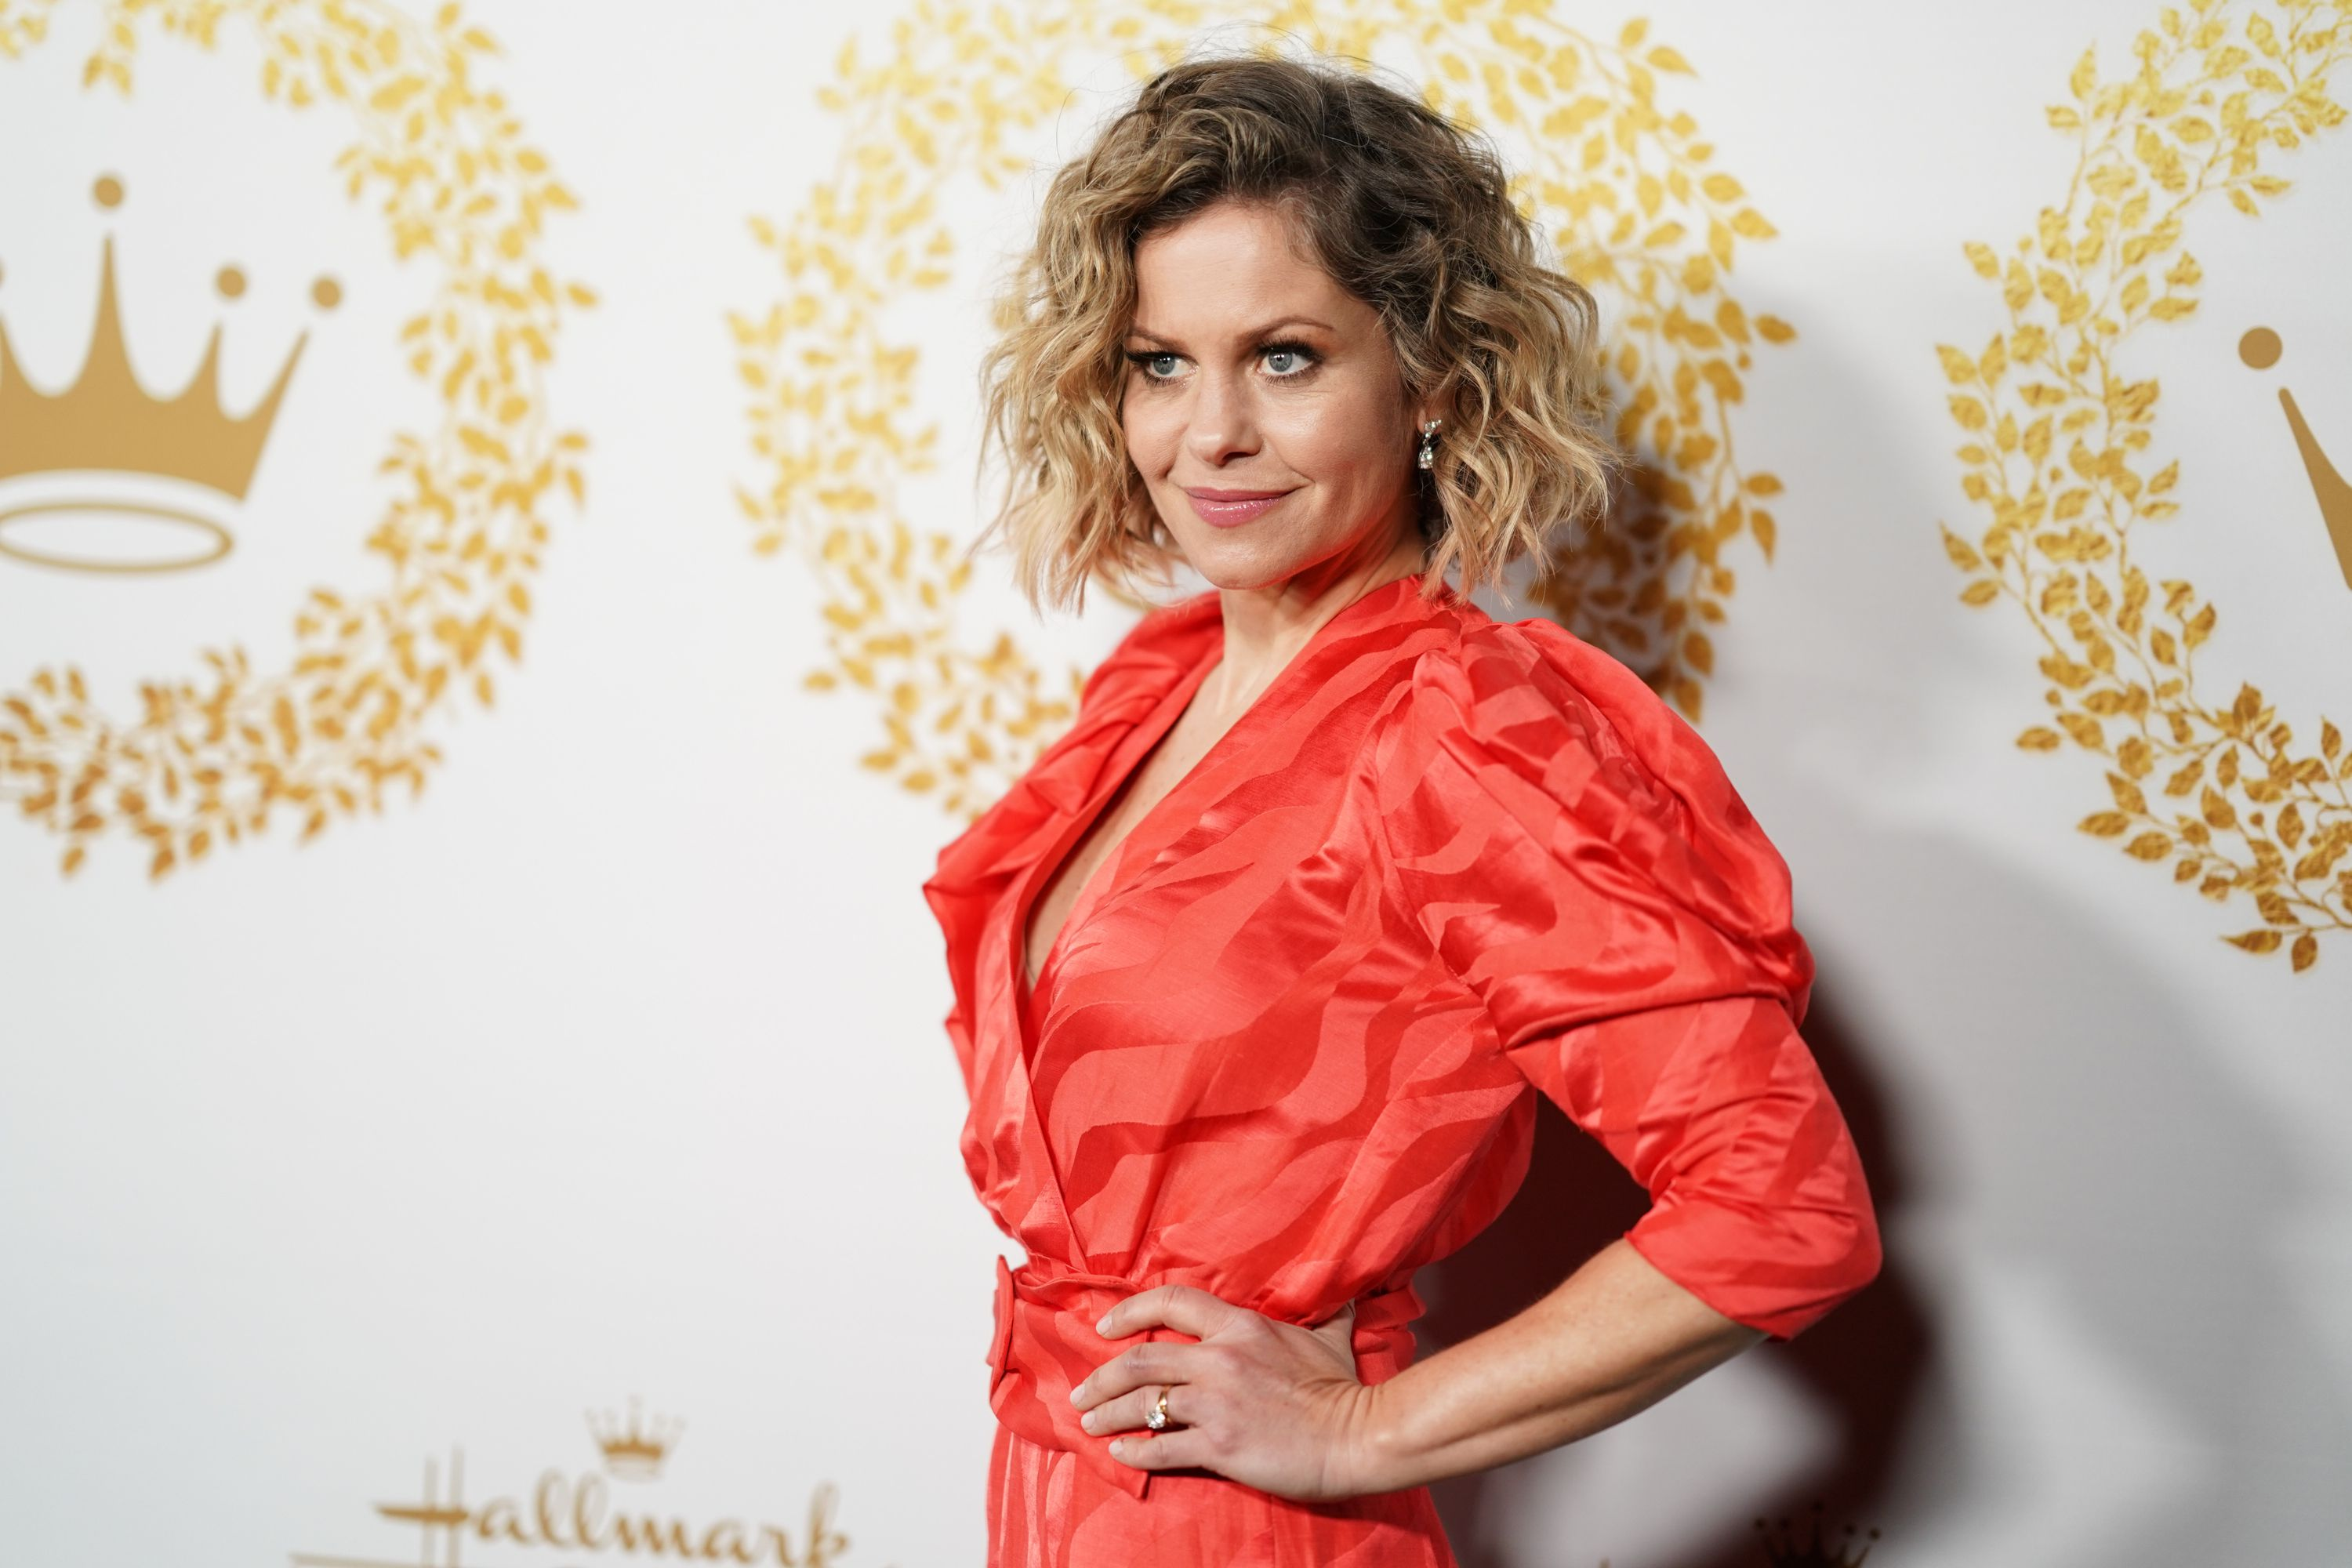 Candace Cameron Bure At The Hallmark Channel And Hallmark Movies And Mysteries 2019 Winter TCA Tour at Tournament House on February 09, 2019 in Pasadena, California | Photo: Getty Images